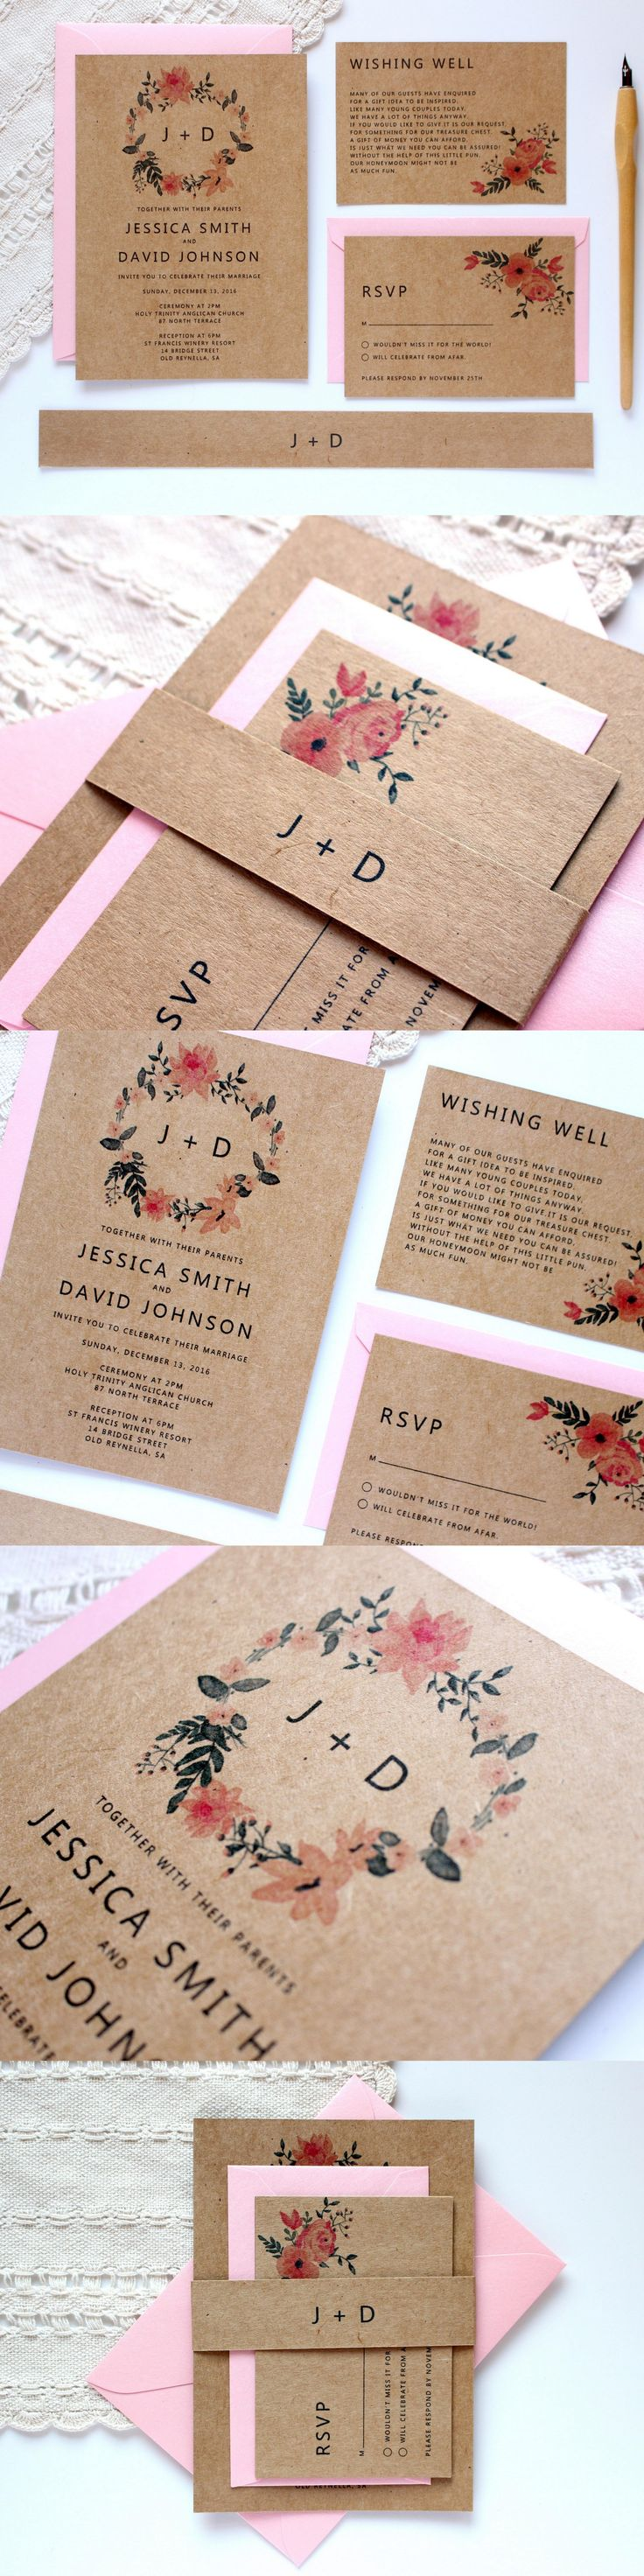 templates for wedding card design%0A Kraft wedding invitation with pink floral wreath by Paper Bound Love